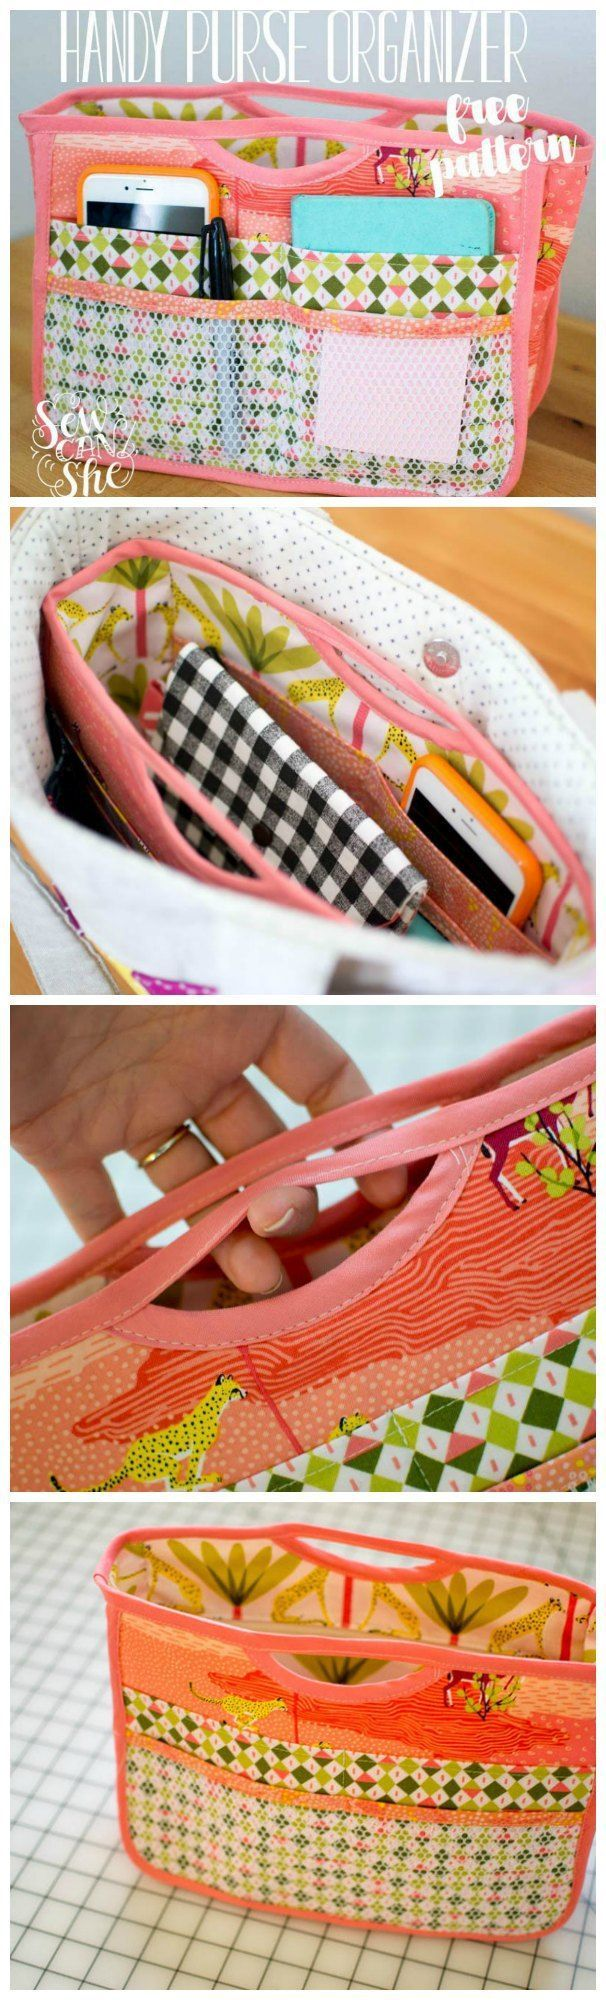 Free sewing pattern for this smart purse organizer. I love using these to transfer all my essentials from one bag to another. Fun to sew!